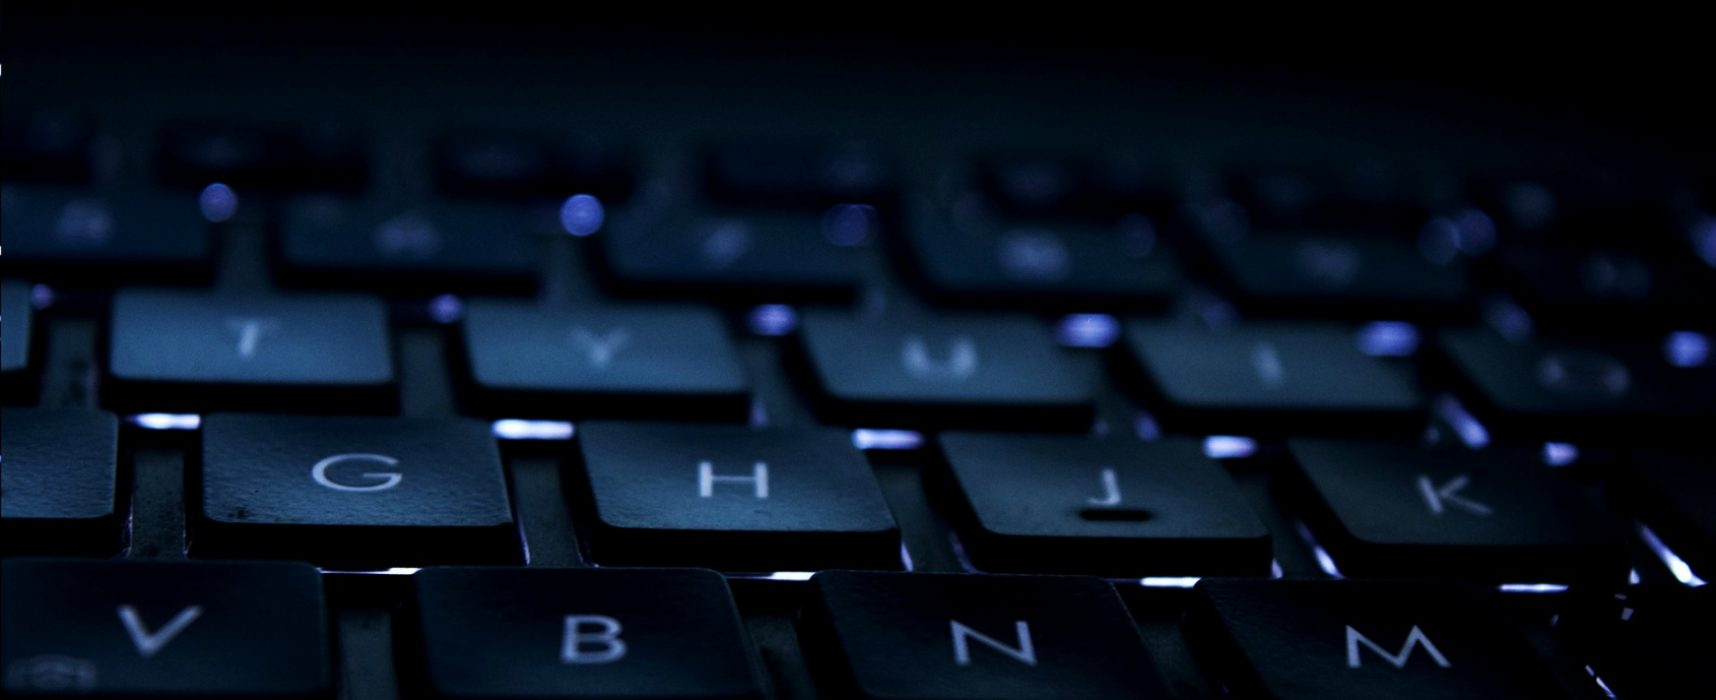 Cyber attacks on defense minister undermine bilateral relations